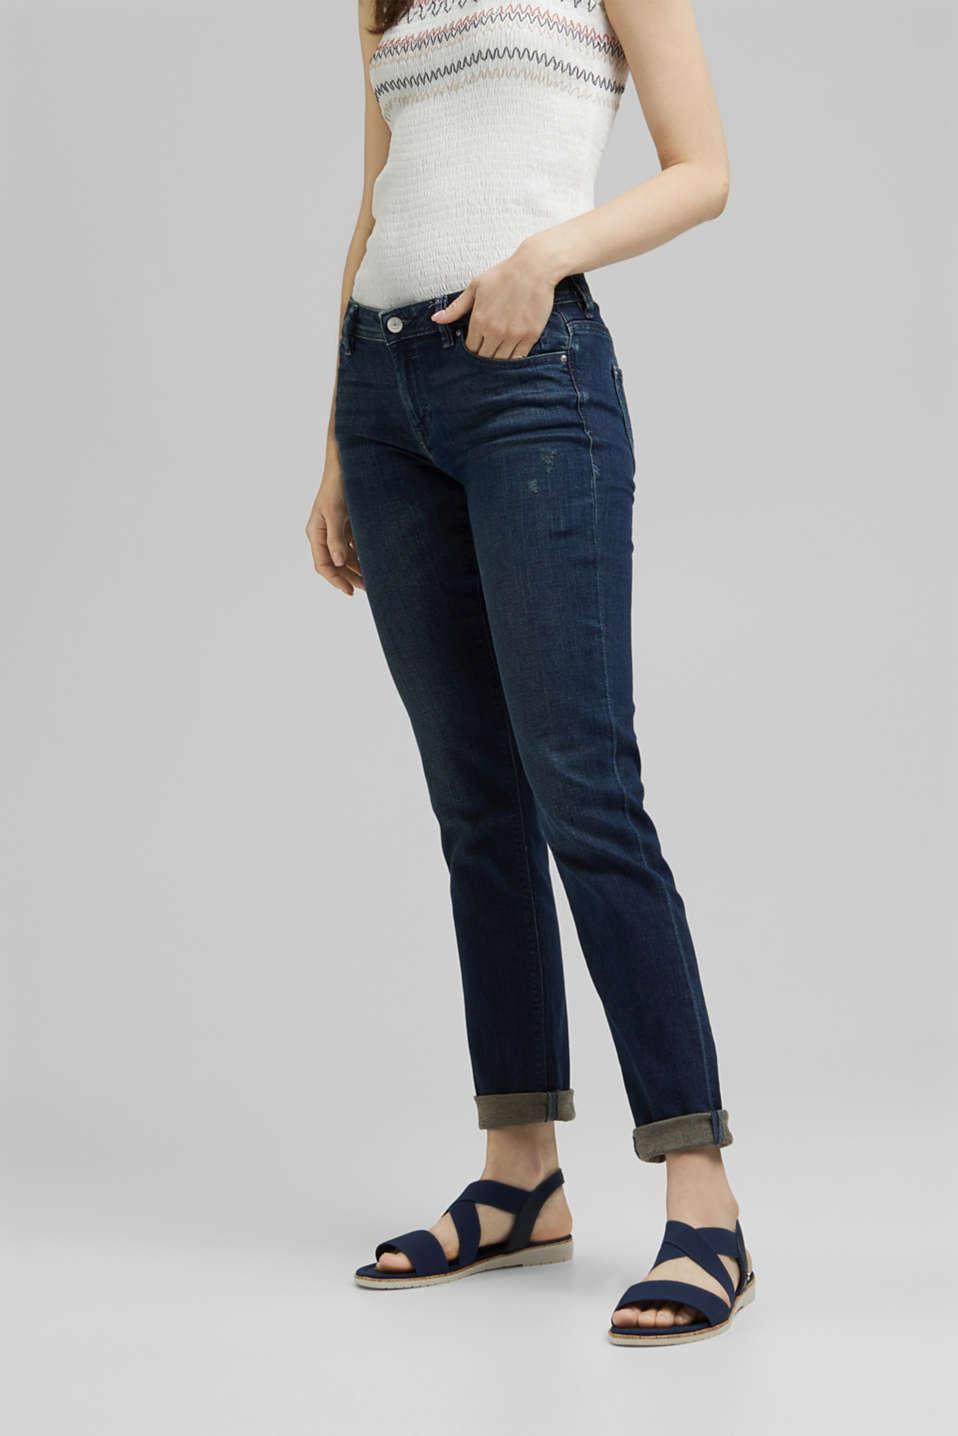 edc - Stretch jeans with vintage effects